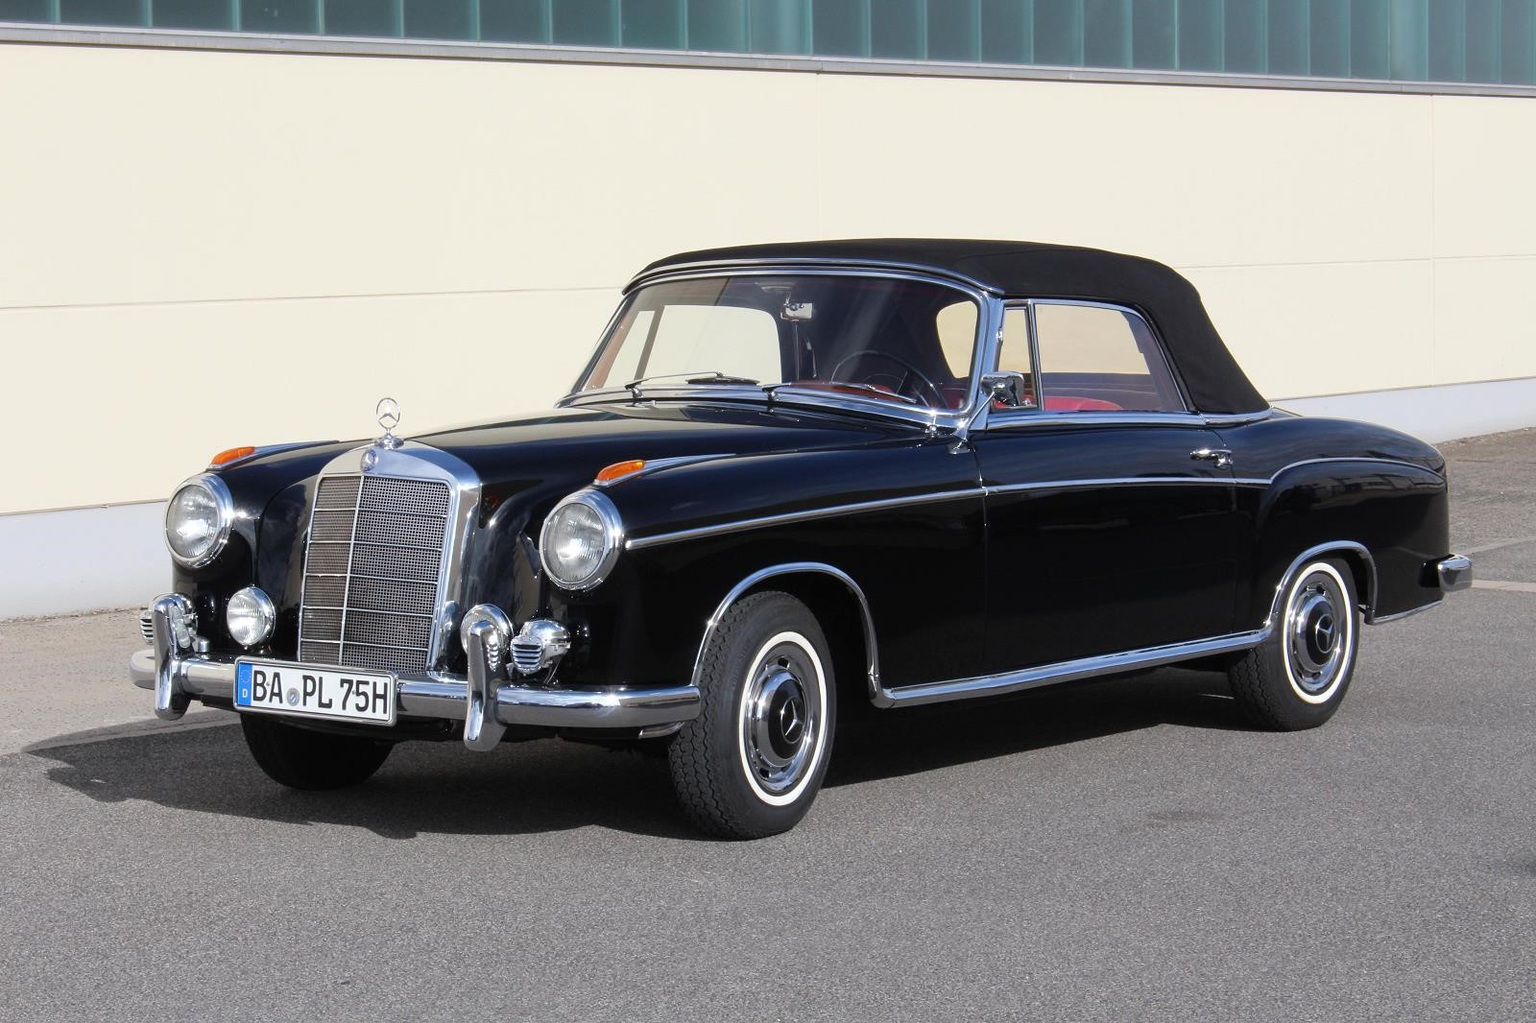 1956 1959 mercedes benz 220 s cabriolet review for 1958 mercedes benz 220s for sale